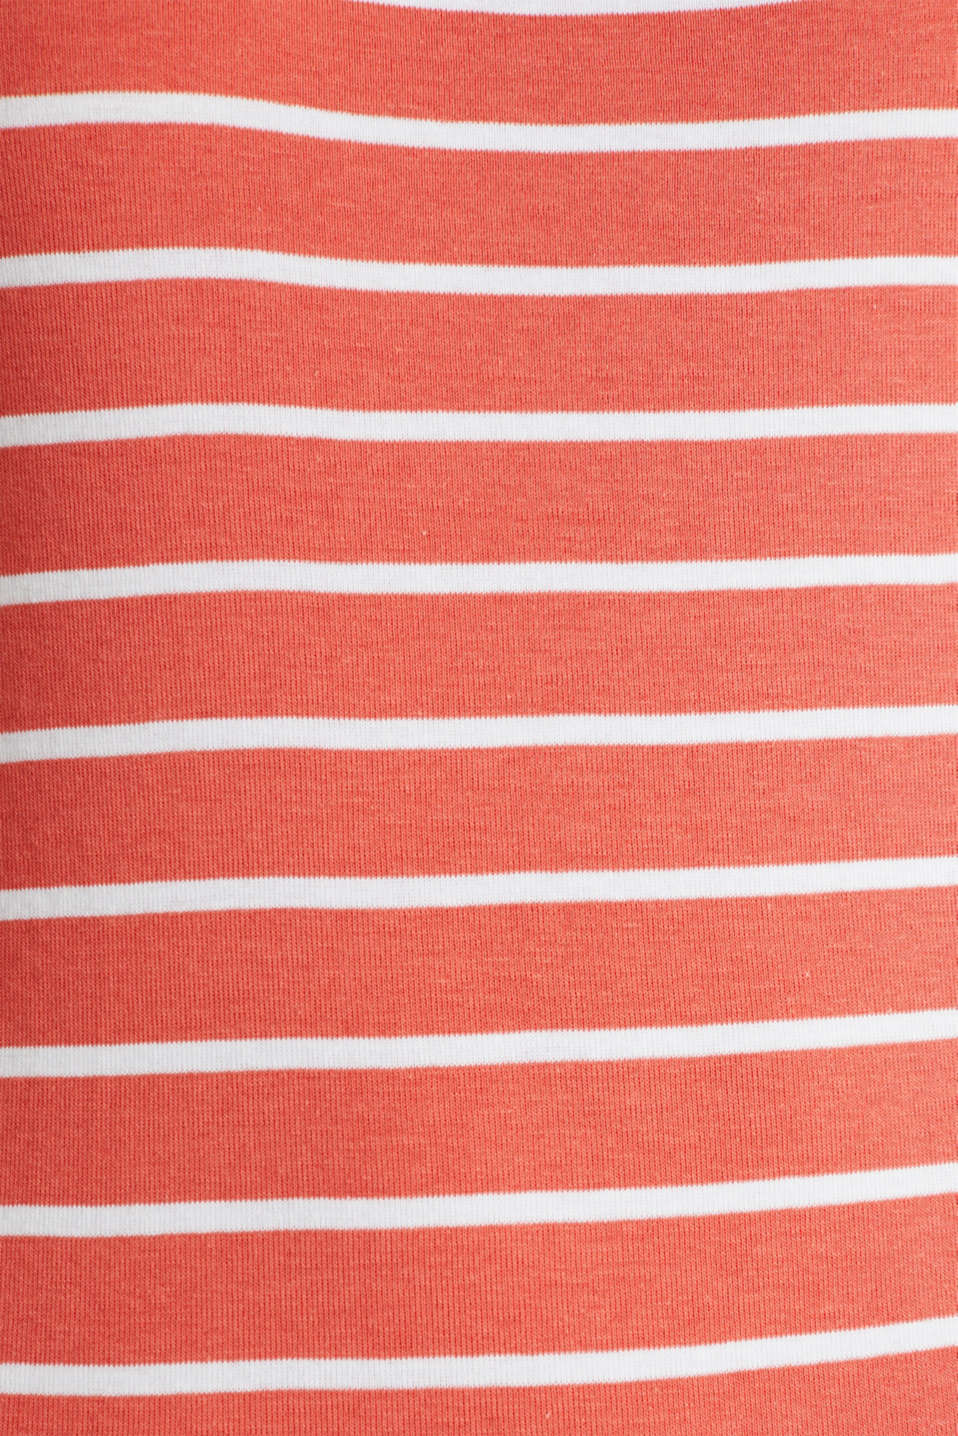 Striped T-shirt, organic cotton, CORAL 4, detail image number 4